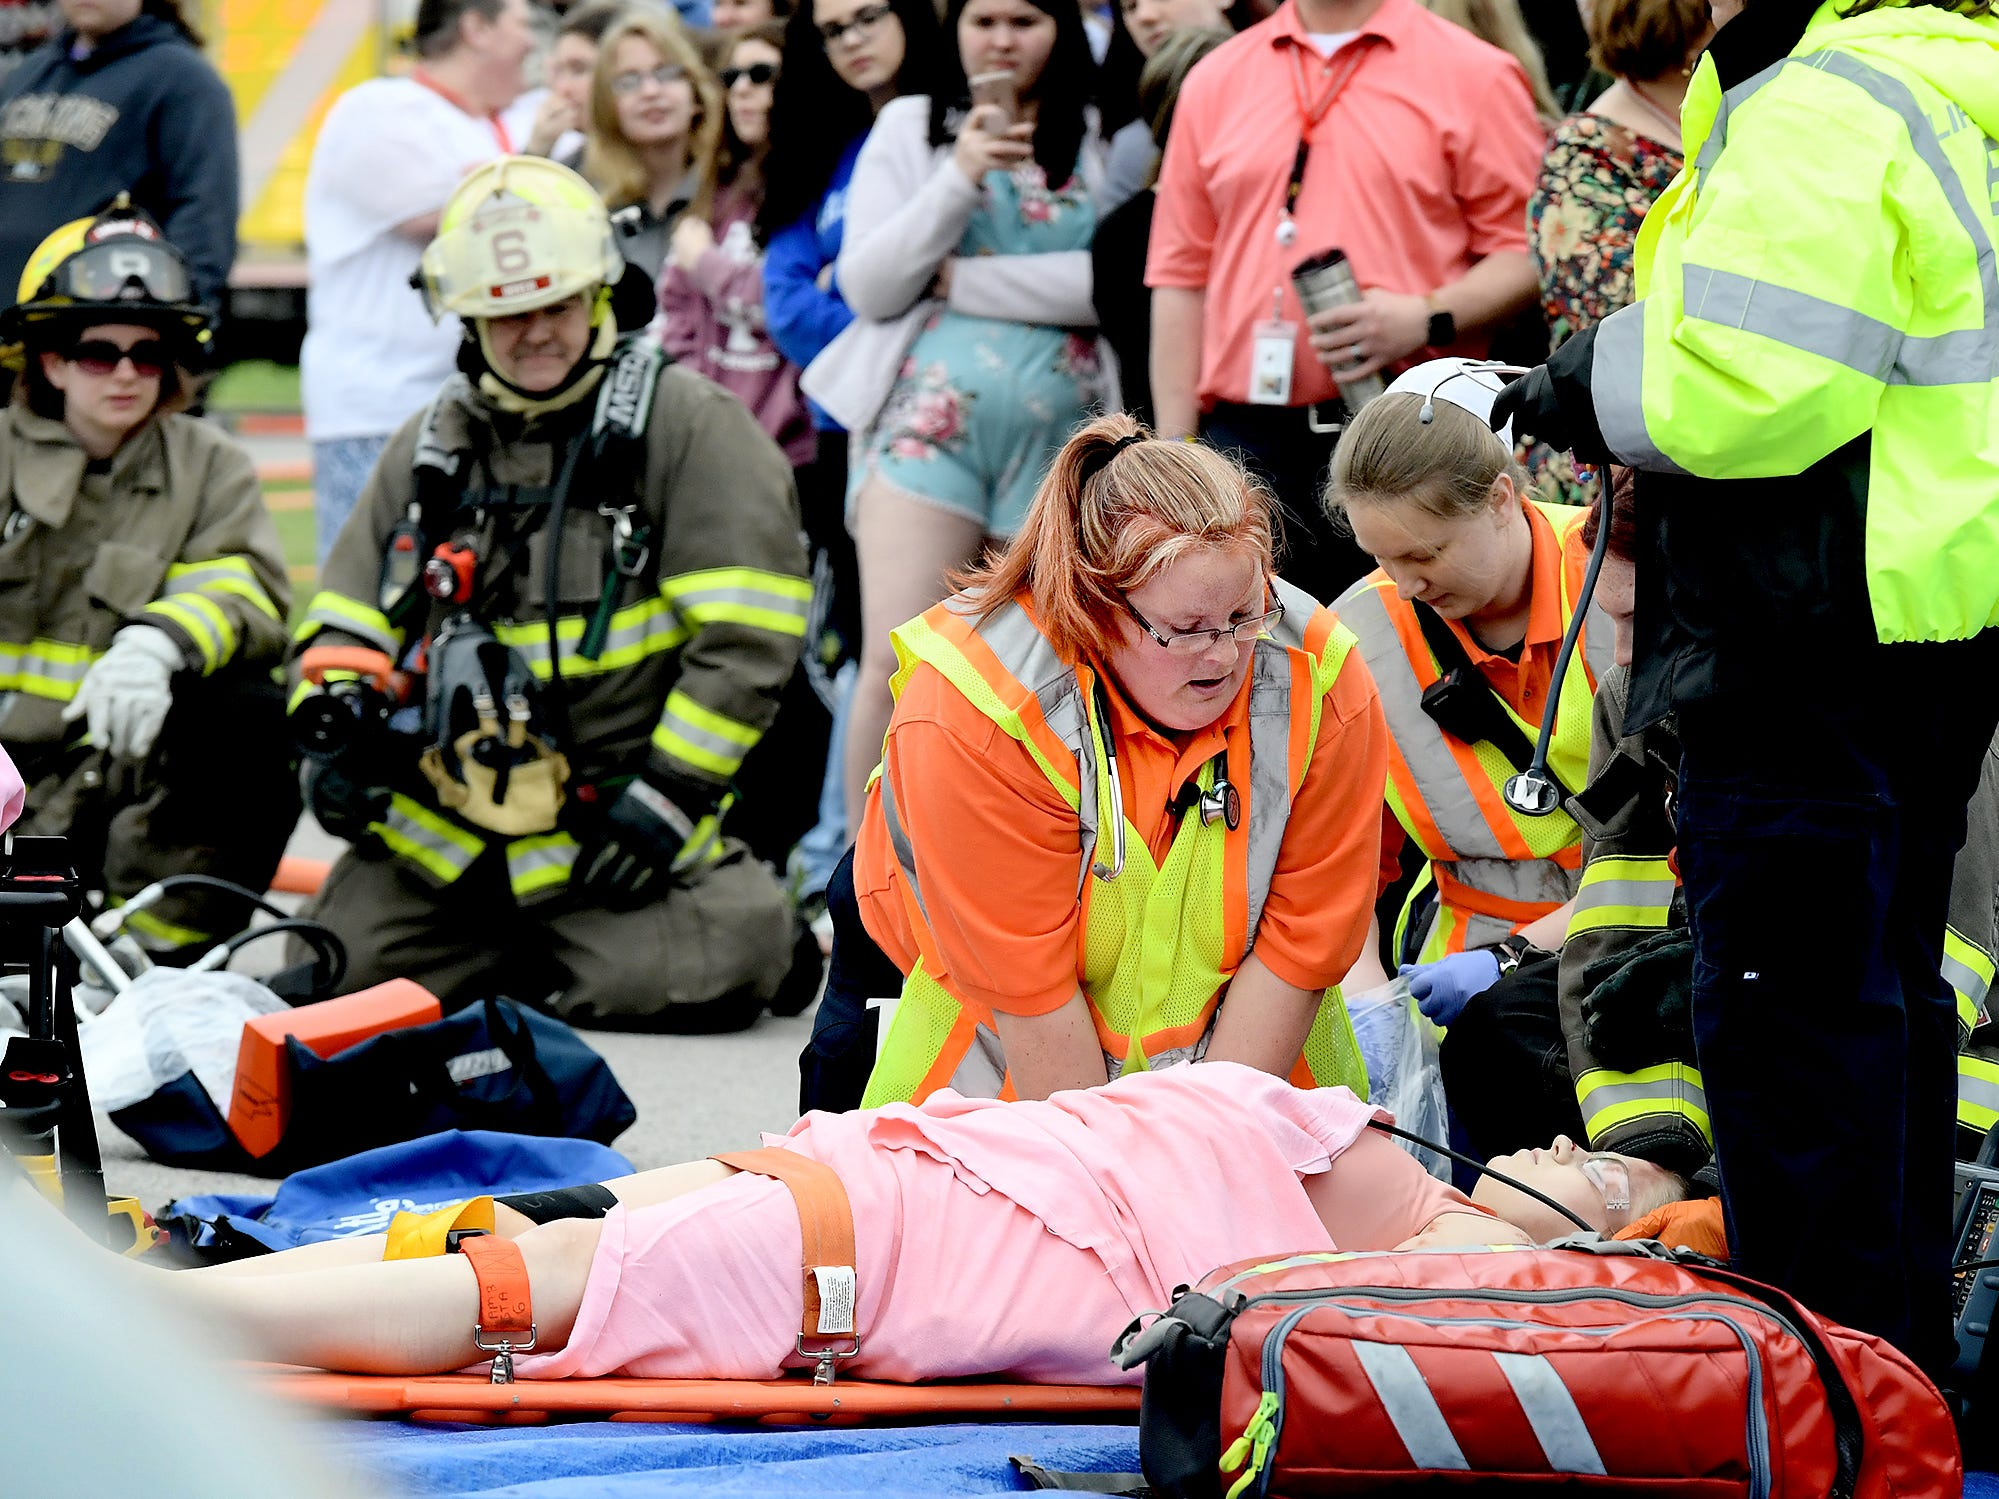 Emergency workers attend to a victim during a mock car accident at the Dover Area High School Thursday, May 9, 2019. Local fire, ambulance and police volunteered for the event which reminds high school upperclassmen to be safe during prom season. Dover's prom in Saturday, May 11. Bill Kalina photo